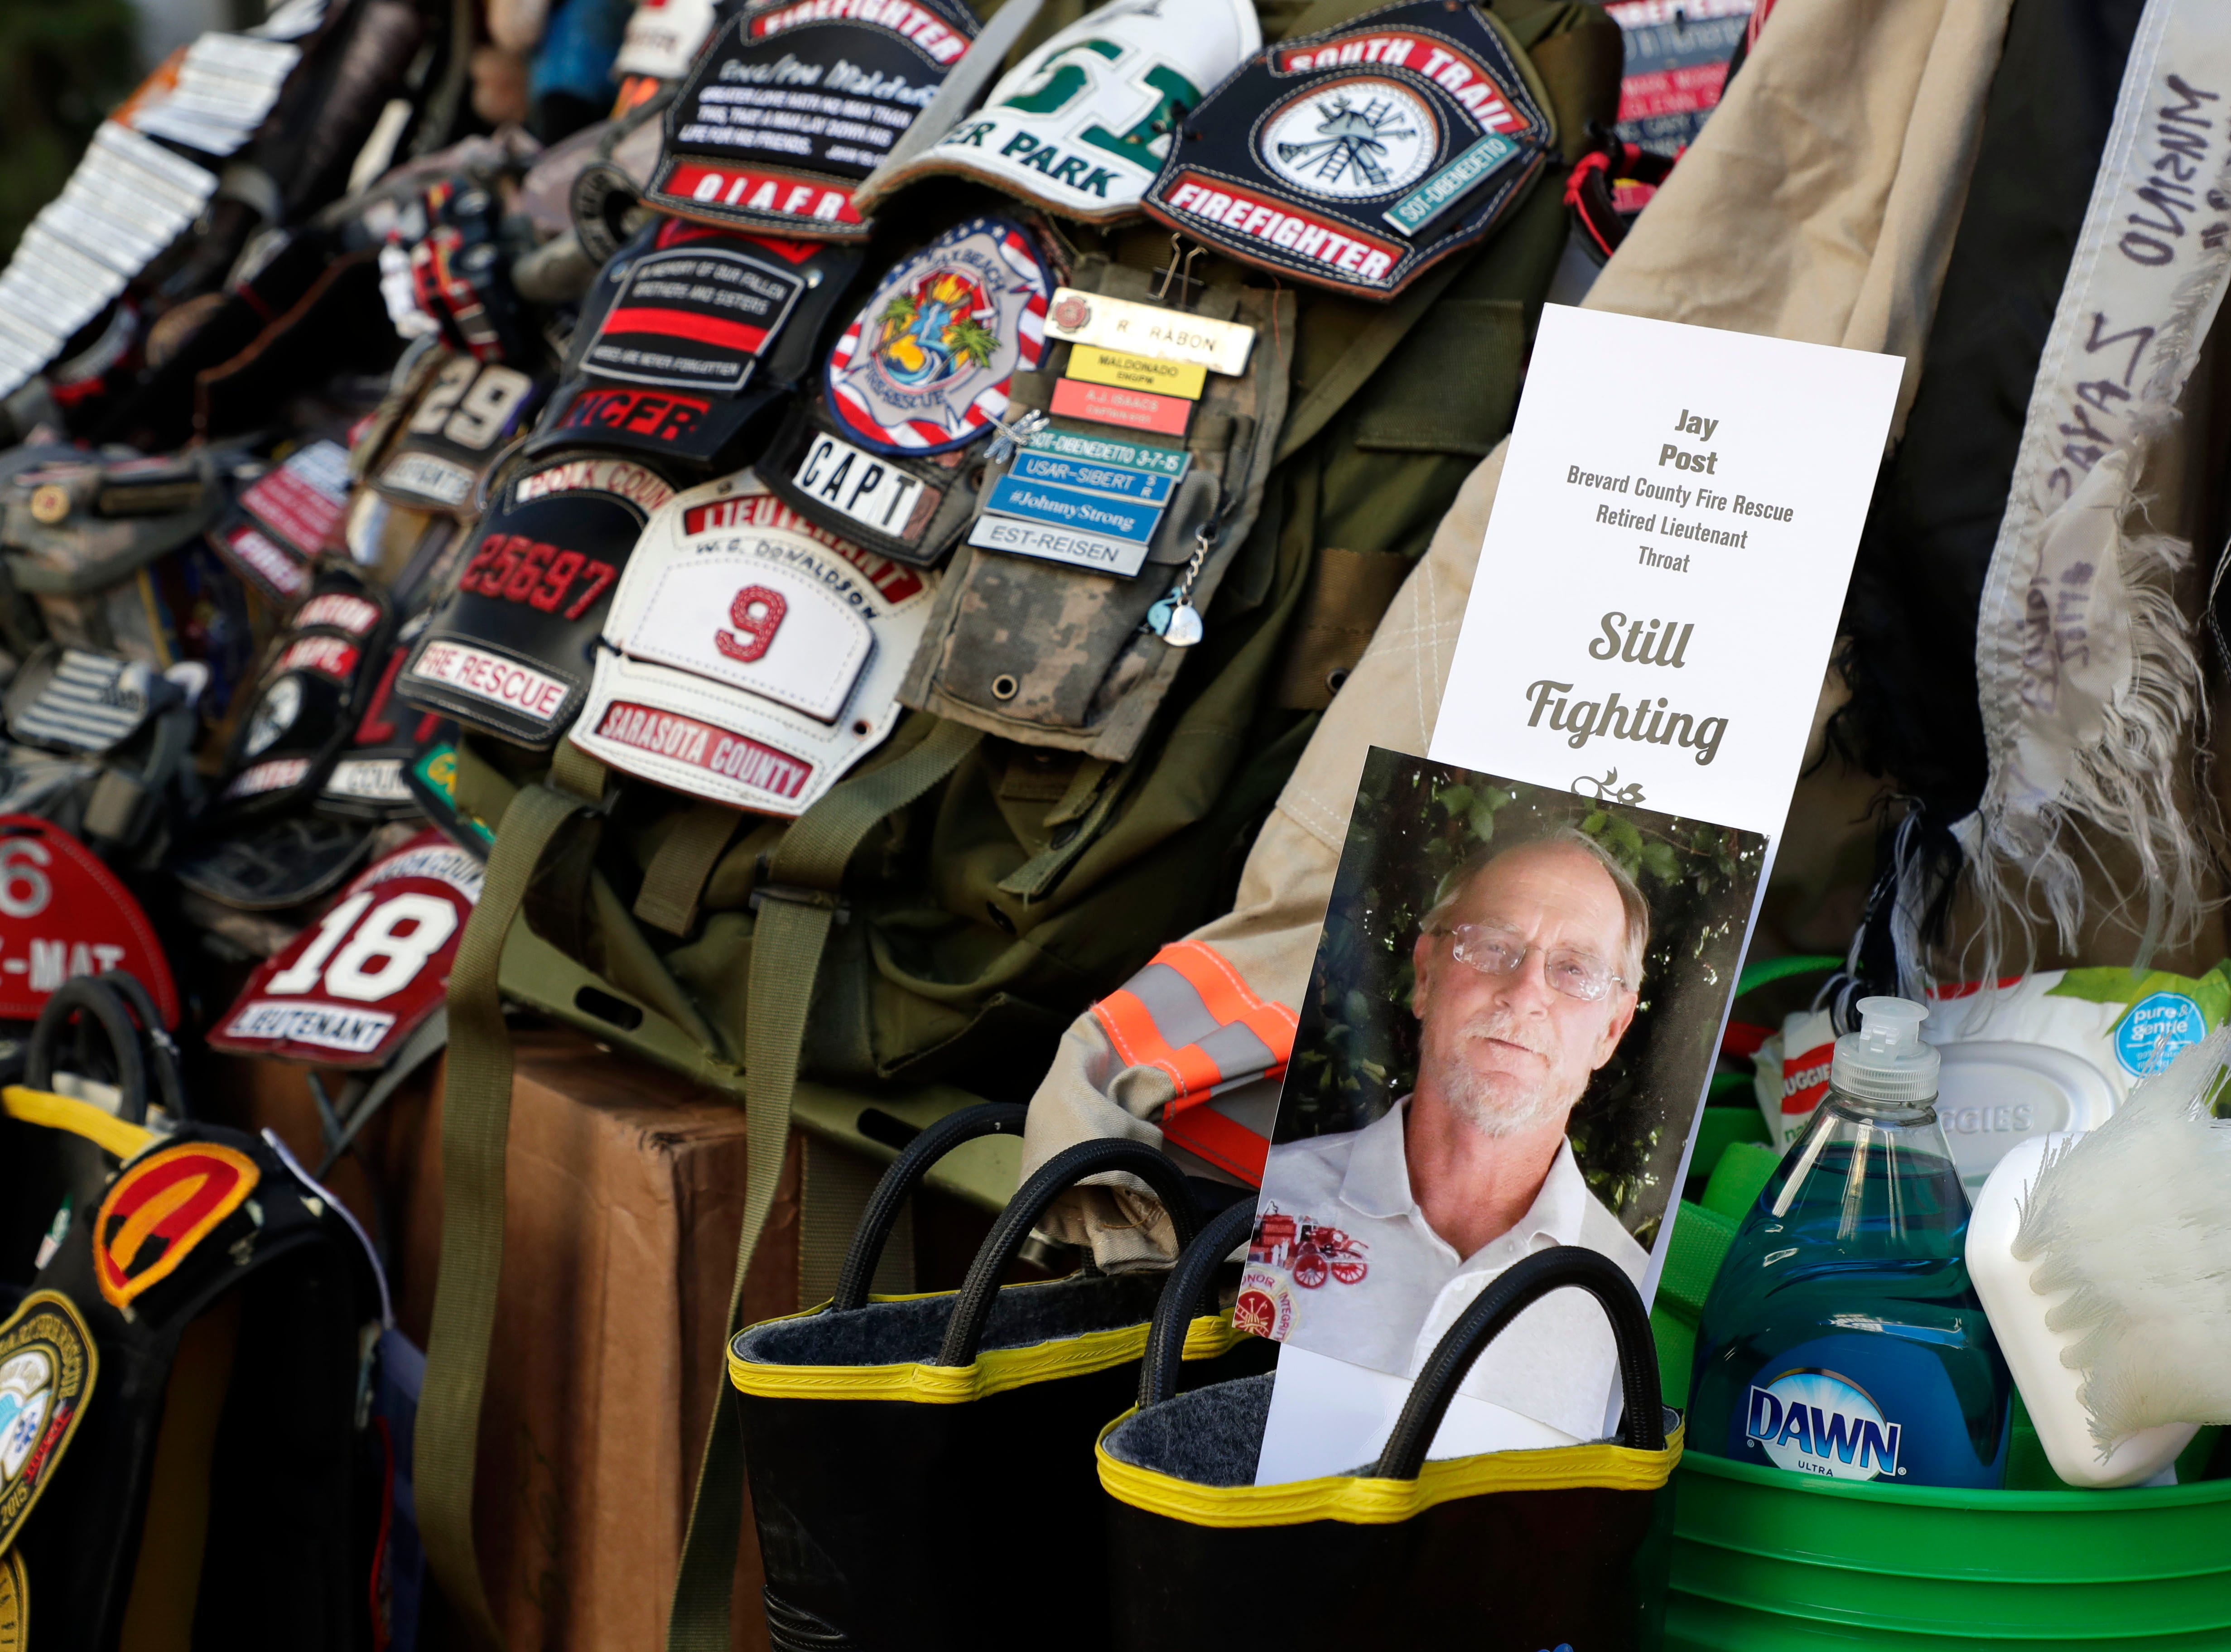 A display honoring Jay Post, a former firefighter who is battling throat cancer. Firefighters and their families from around the state create a display at the Capitol of 500 pairs of boots in honor of firefighters who lost their battle or are battling with cancer caused from smoke inhalation and carcinogens Thursday, March 7, 2019. The state of Florida is one of five states in the country that does not have a bill acknowledging cancer is a job-related illness.